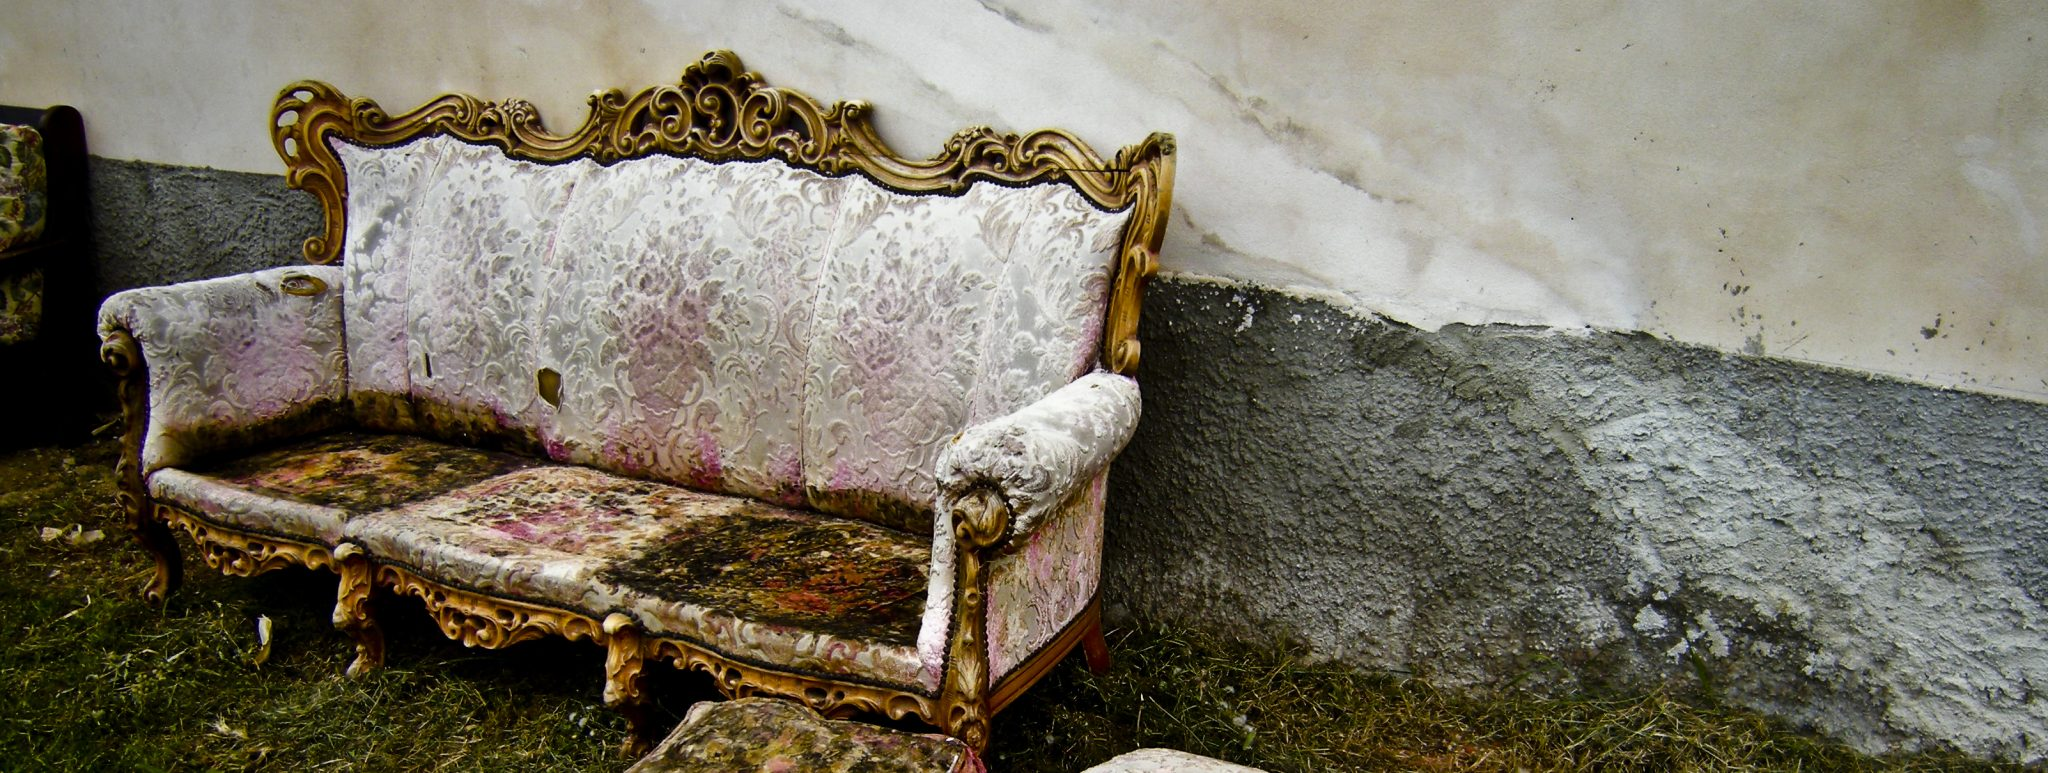 How To Get Rid Of Old Furniture On Long Island Jiffy Junk